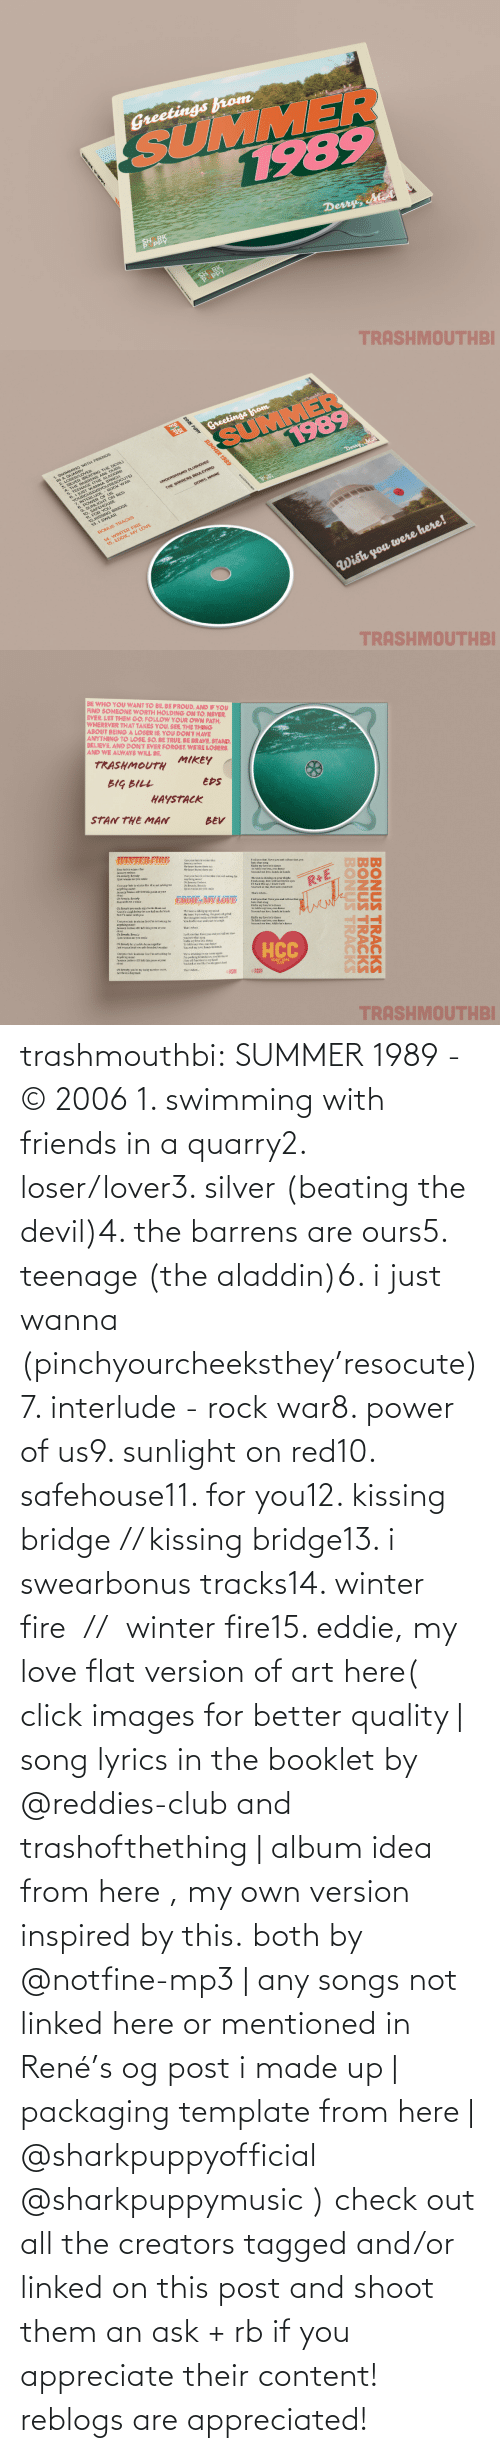 bridge: trashmouthbi: SUMMER 1989 - © 2006 1. swimming with friends in a quarry2. loser/lover3. silver (beating the devil)4. the barrens are ours5. teenage (the aladdin)6. i just wanna (pinchyourcheeksthey'resocute)7. interlude - rock war8. power of us9. sunlight on red10. safehouse11. for you12. kissing bridge // kissing bridge13. i swearbonus tracks14. winter fire  //  winter fire15. eddie, my love flat version of art here( click images for better quality | song lyrics in the booklet by @reddies-club​ and trashofthething | album idea from here , my own version inspired by this. both by @notfine-mp3​ | any songs not linked here or mentioned in René's og post i made up | packaging template from here | @sharkpuppyofficial​ @sharkpuppymusic​ ) check out all the creators tagged and/or linked on this post and shoot them an ask + rb if you appreciate their content! reblogs are appreciated!